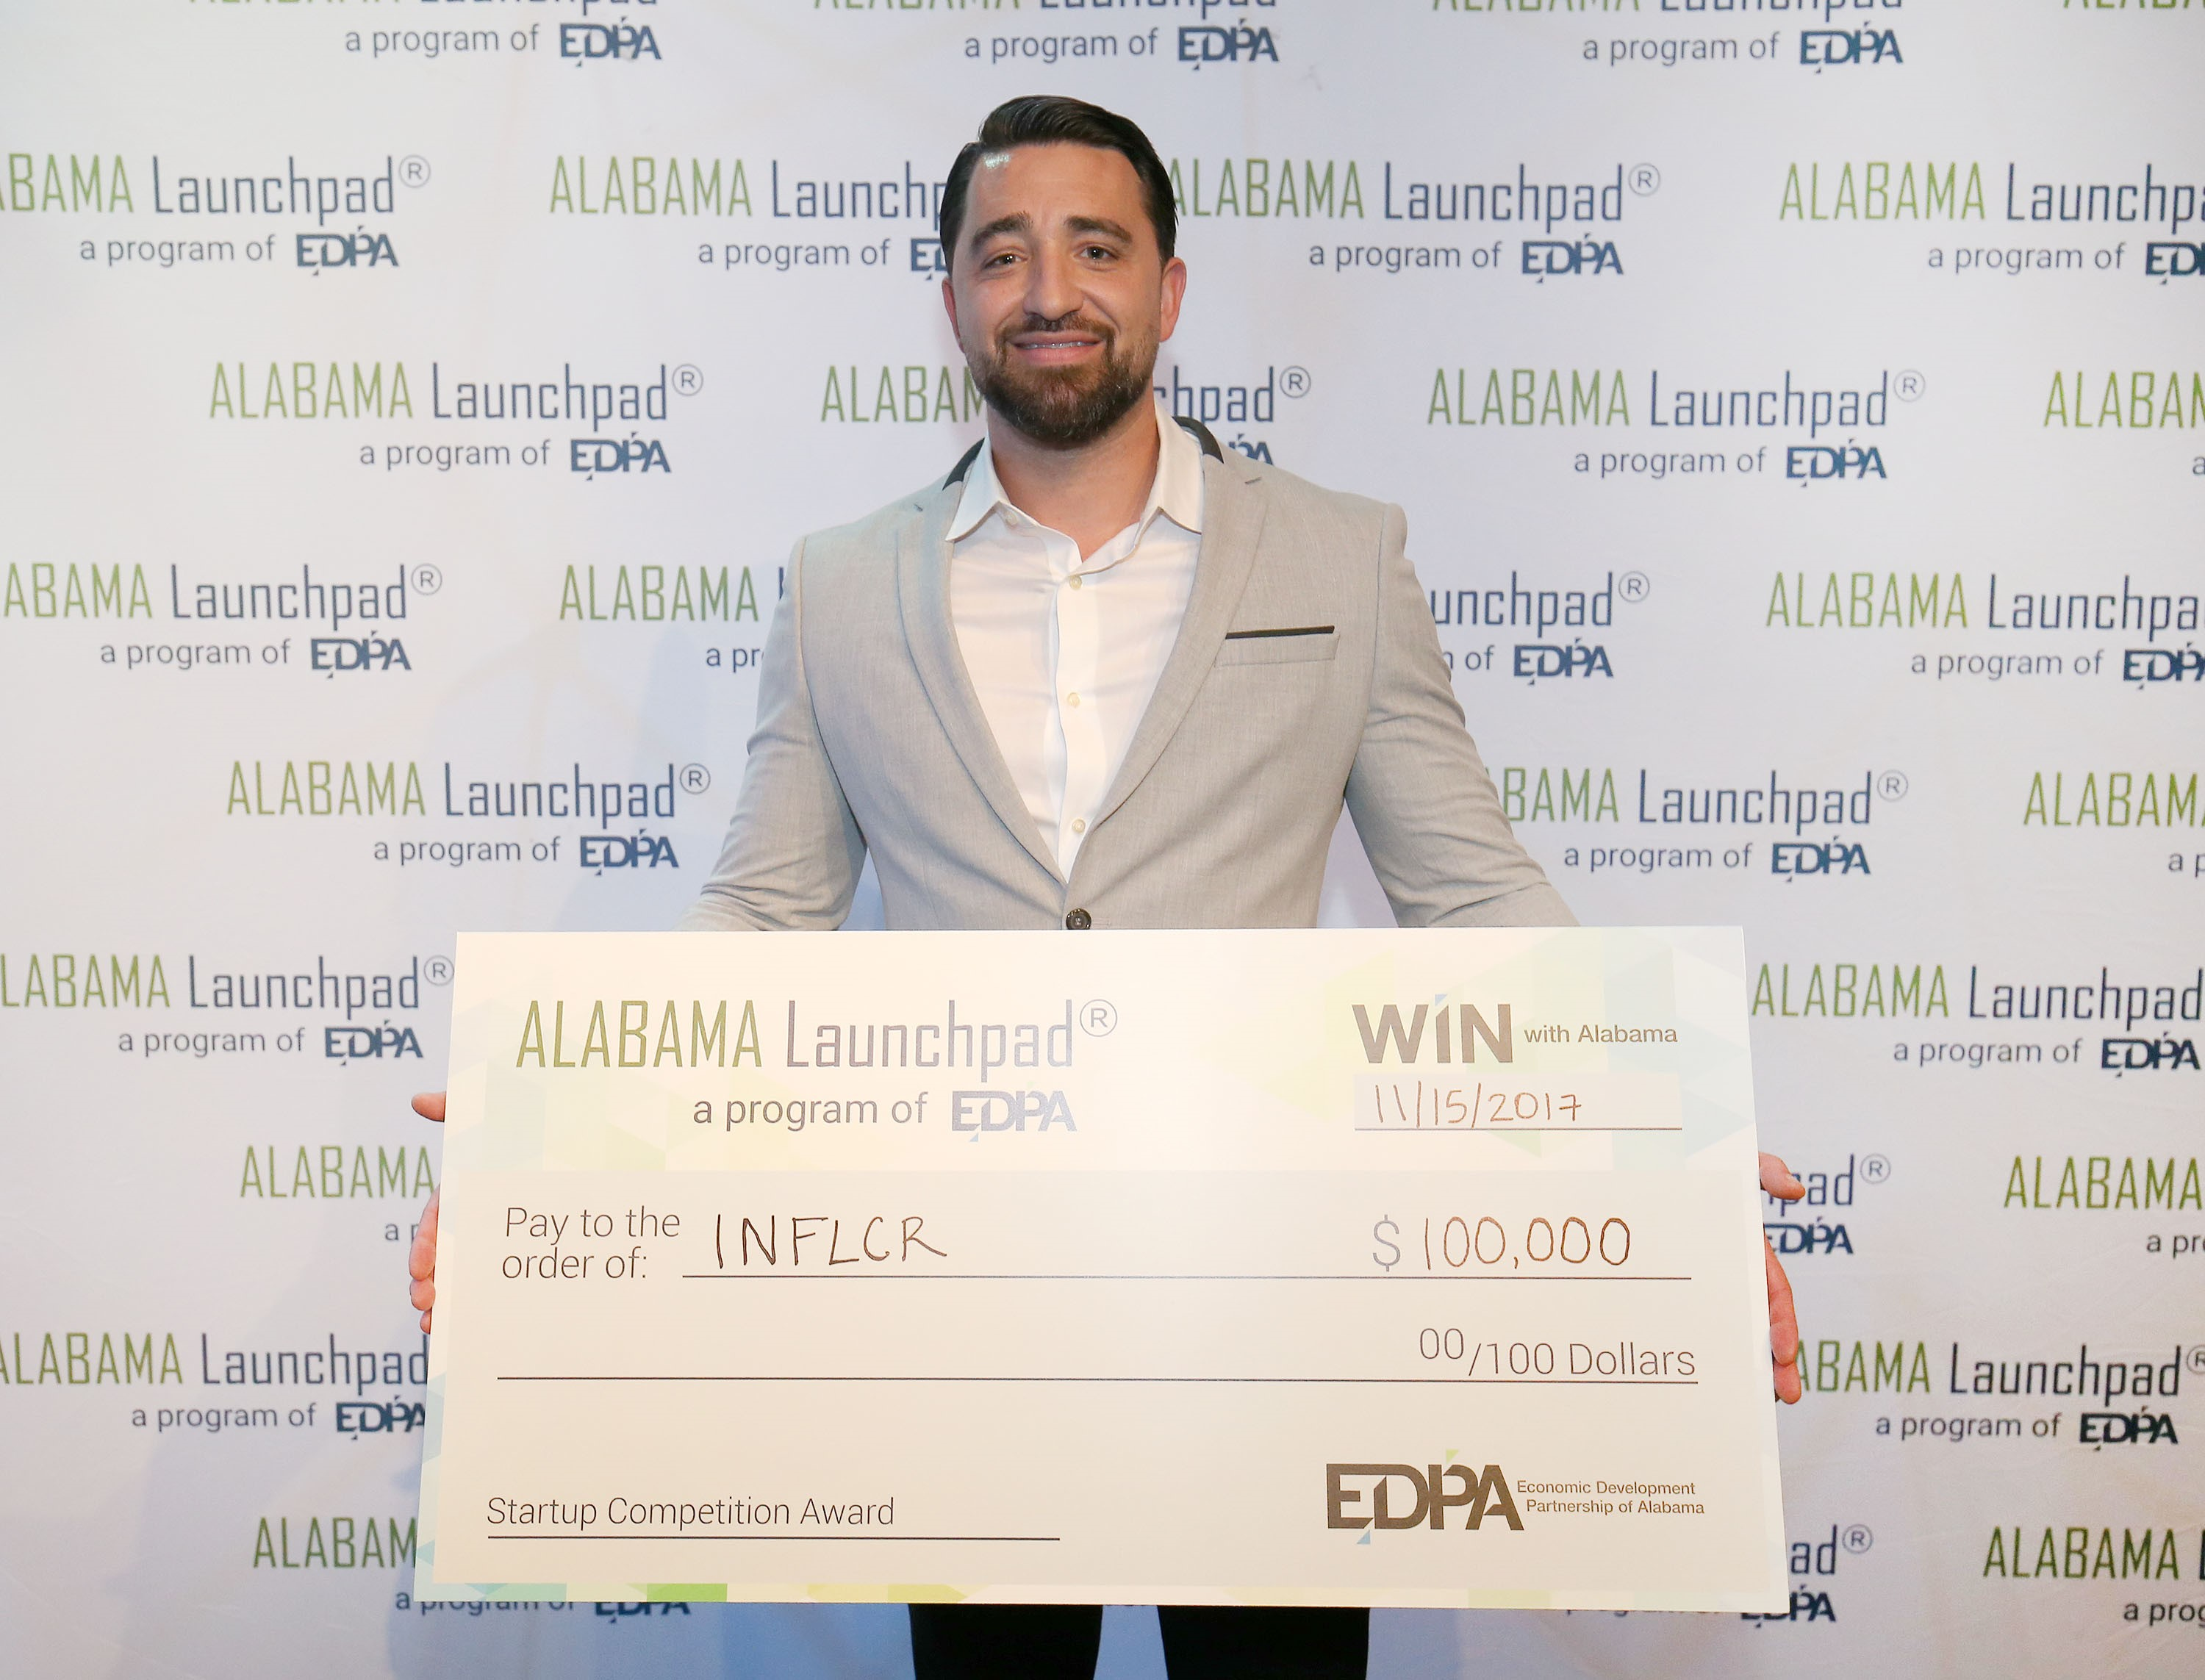 Alabama Launchpad selects 2 innovative startups for funding